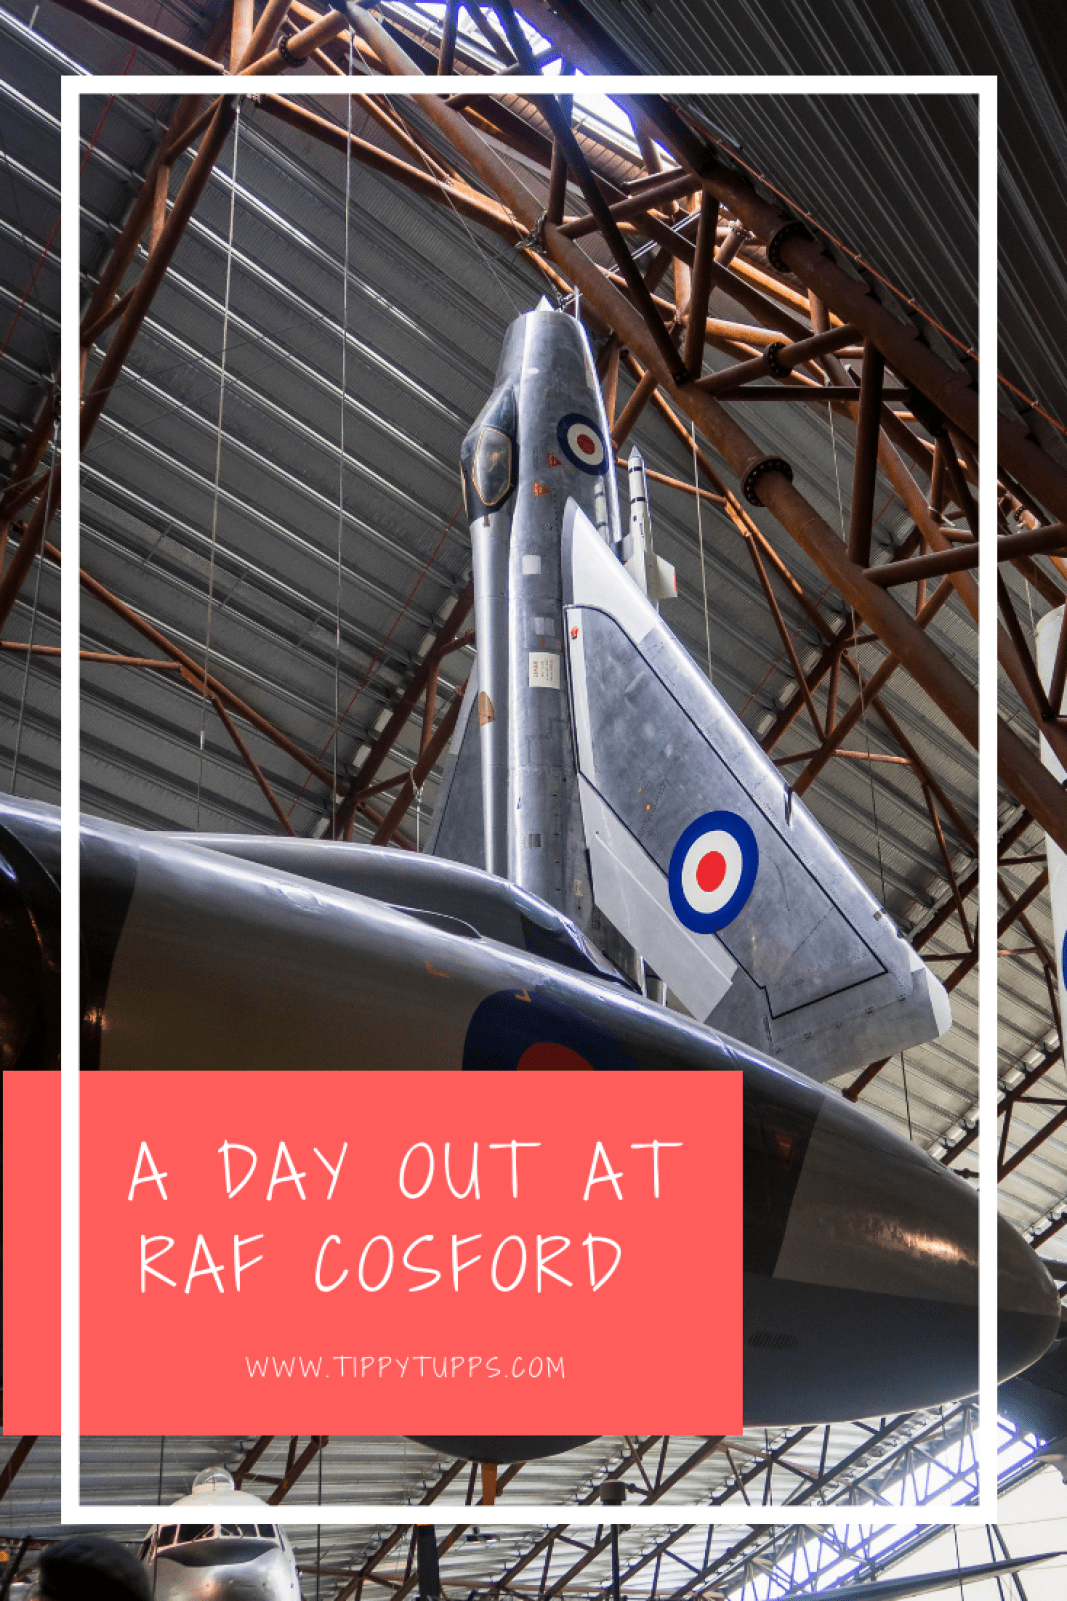 RAF Cosford is a great day out for anyone, no matter what your age. A great family day out and free to come along to. Even people who aren't aircraft enthusiasts should see it at least once.